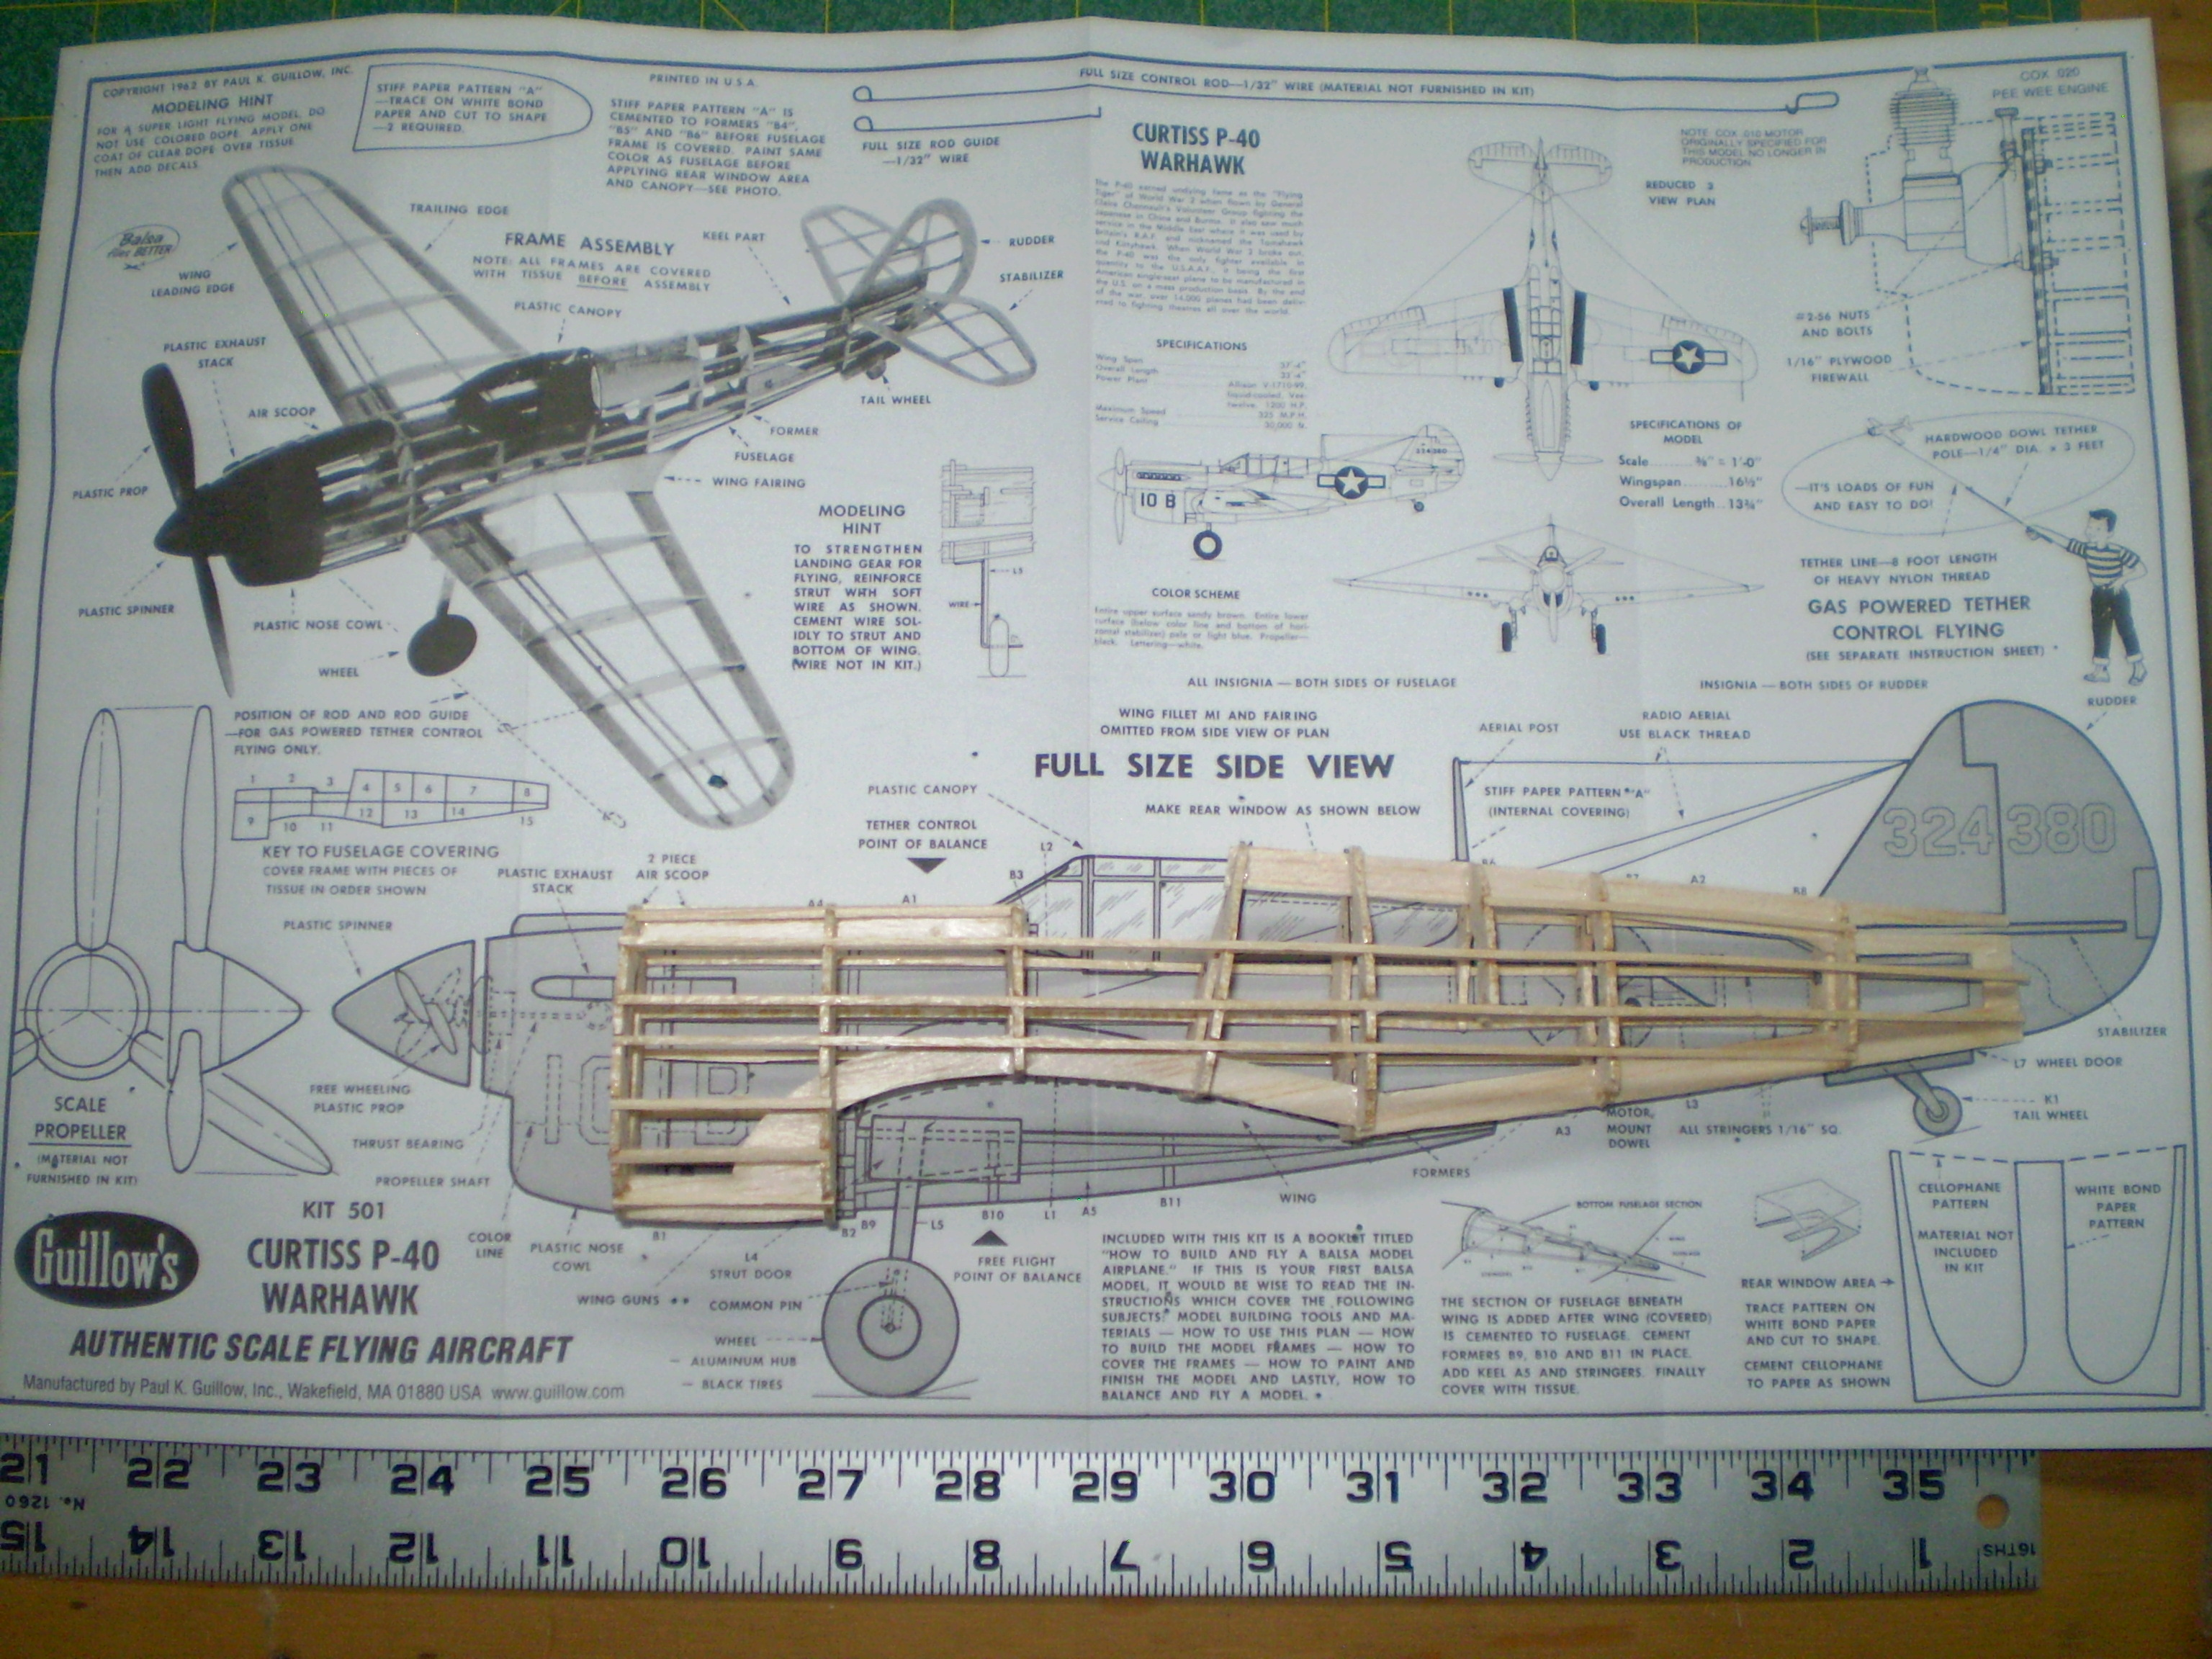 rc plane electronics kit with Showthread on Tamiya 60748 Supermarine Spitfire Mk I Plastic Plane Model Kit moreover Futaba Receiver Wire Diagram as well Pp 353800 likewise NASA Uses 3D Printing To Build A New Breed Of Aircraft in addition Mini Speed Boat Plans.